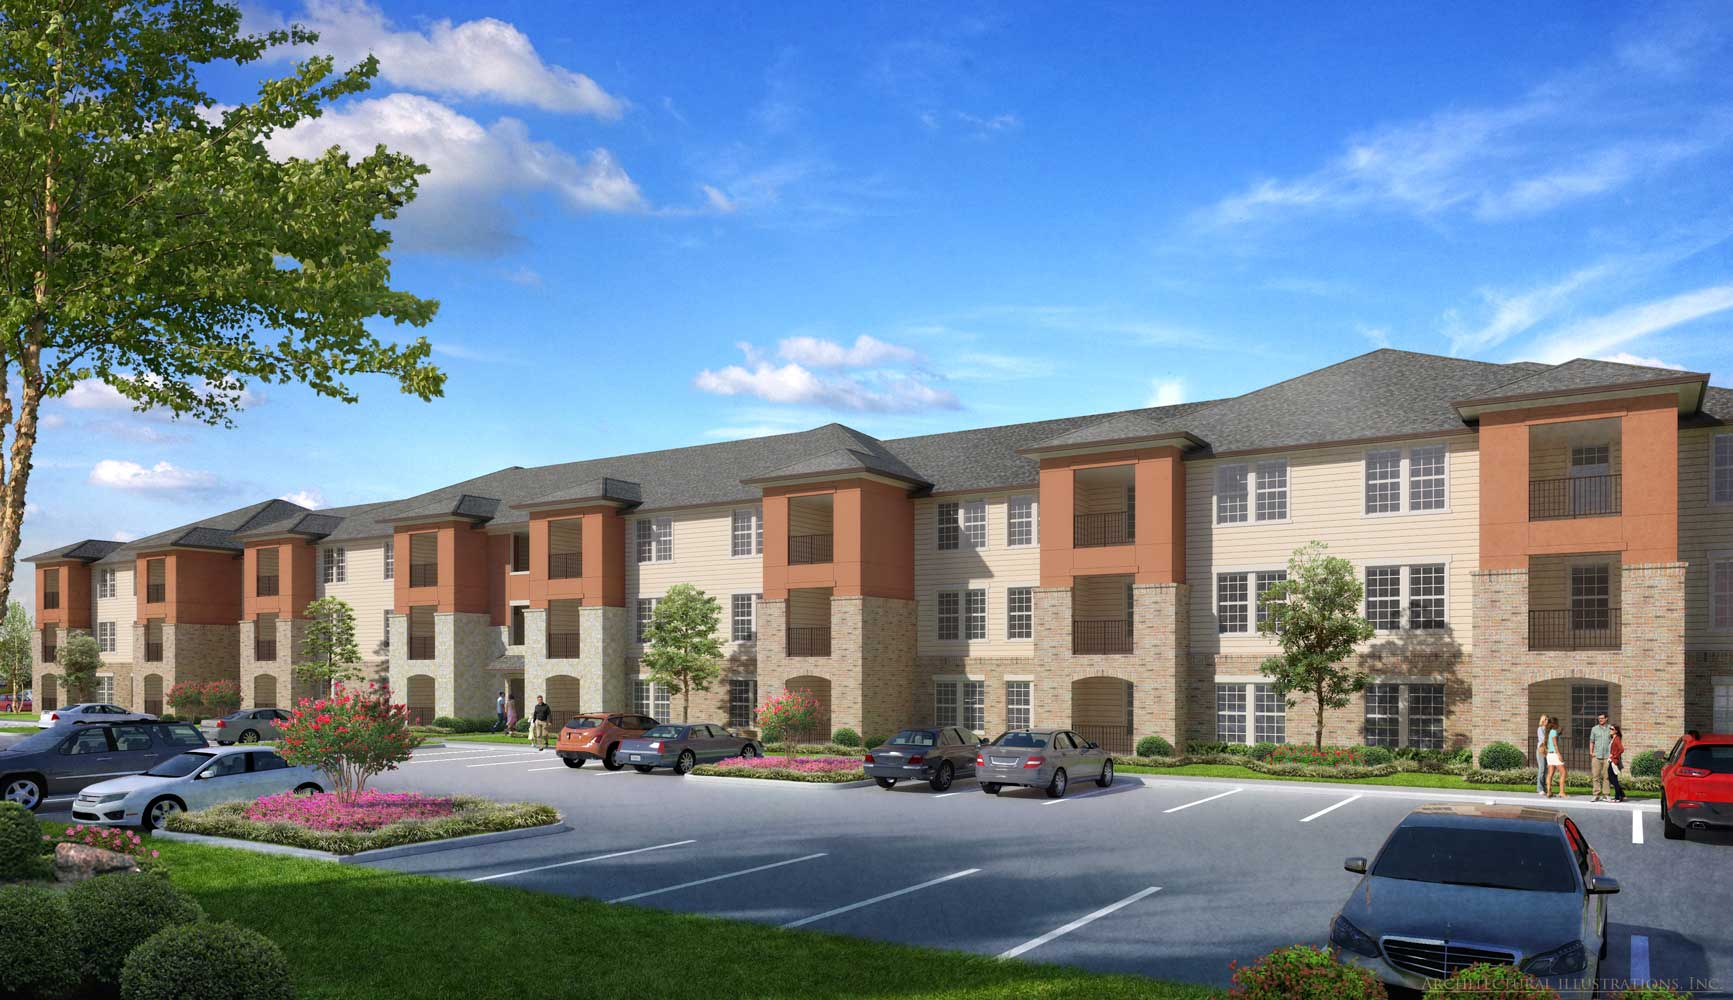 Gardner Capital Completes 93-Unit Gala at Four Corners Upscale Senior Living Community in The Heart of Sugar Land, Texas